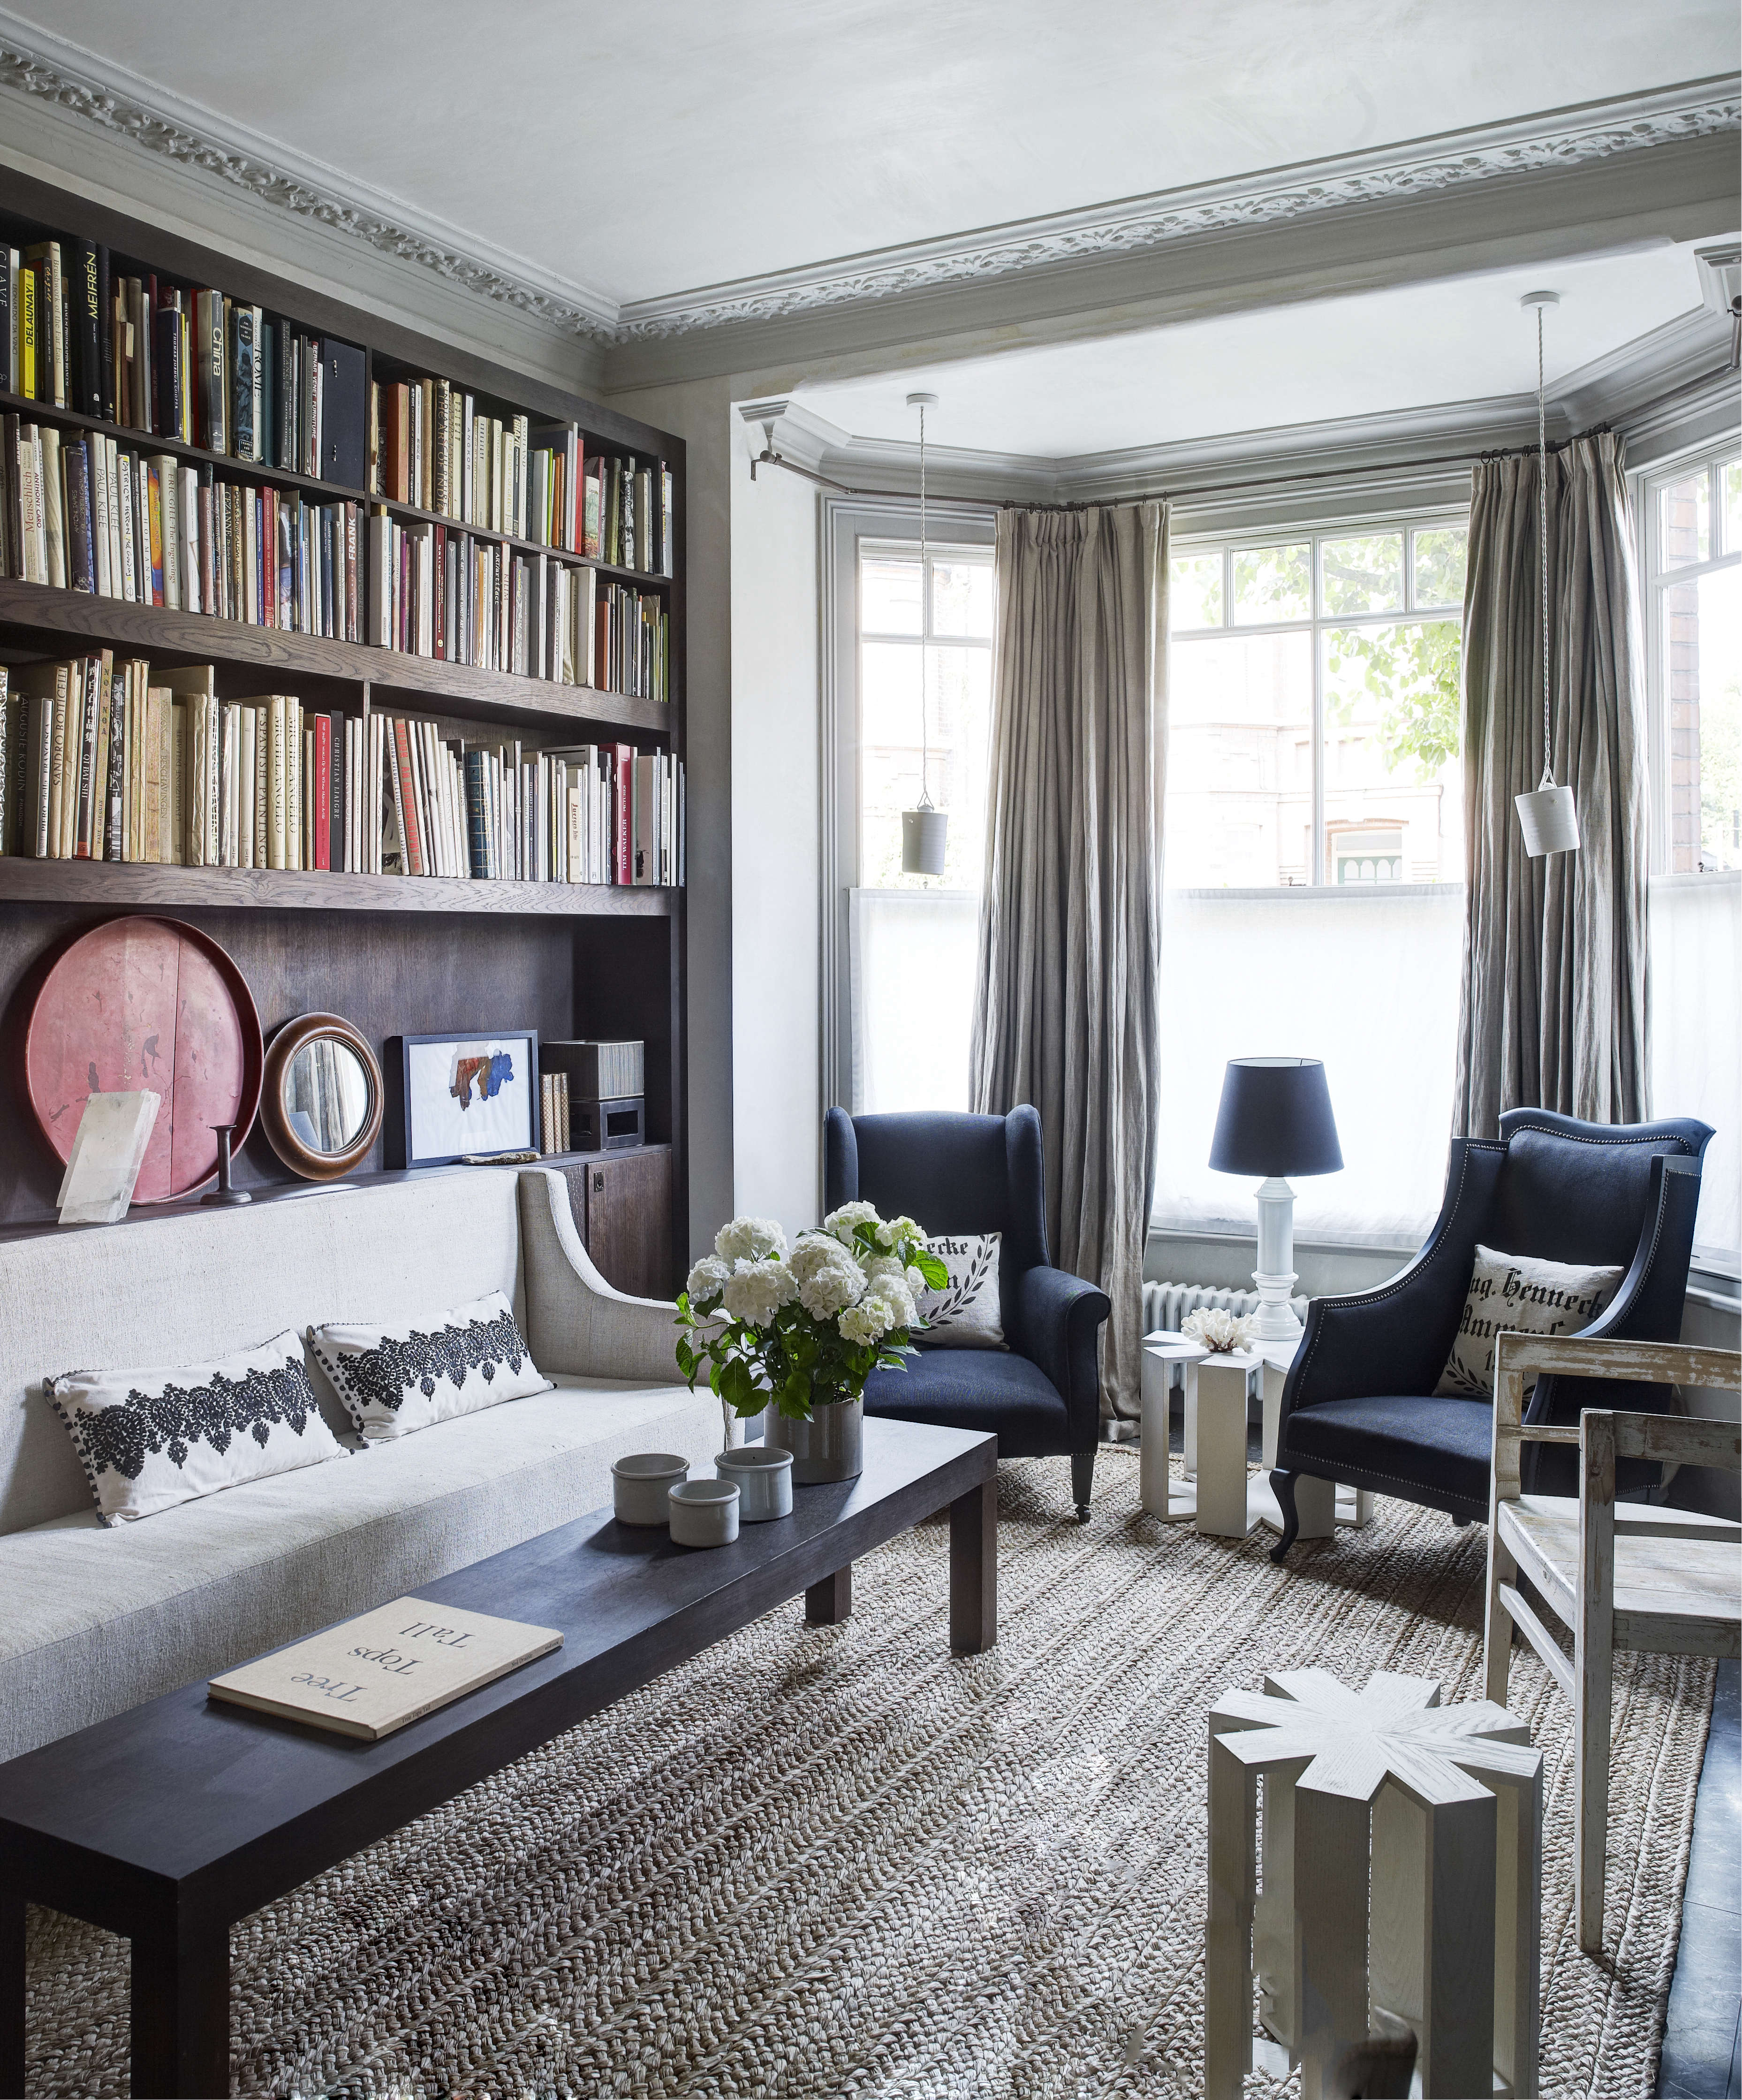 slow architecture an elegant monochrome home in london by spencer fung london house by richard powers